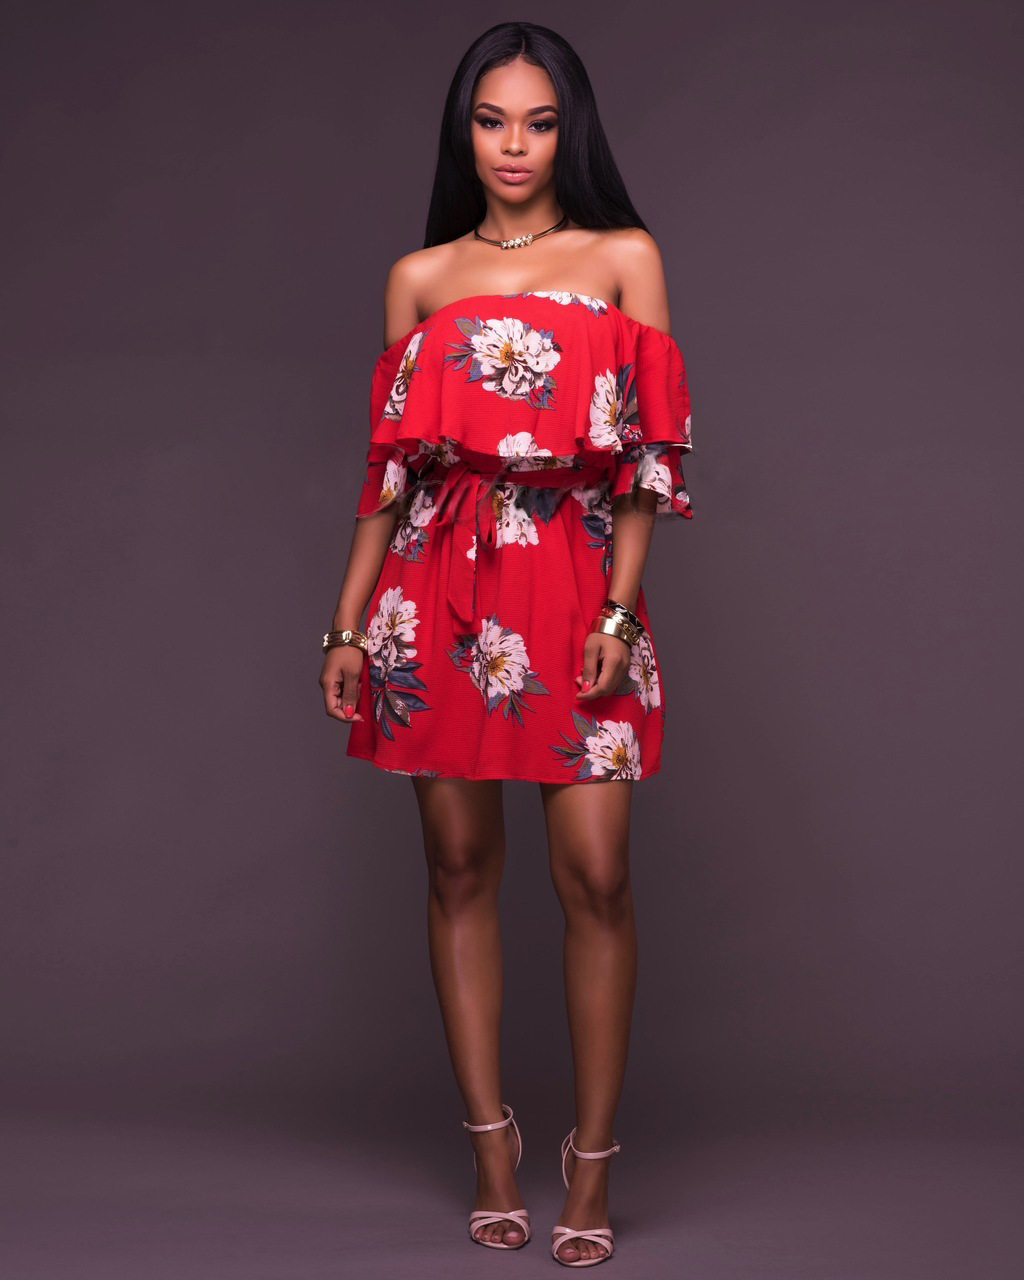 1b9bc8bf998e Summer Red Floral Dress Ruffle Neck Off Shoulder Short Sleeve Mini Dress  Loose Beach Dress With Belt Sexy Ladies Clothing-in Dresses from Women's  Clothing ...